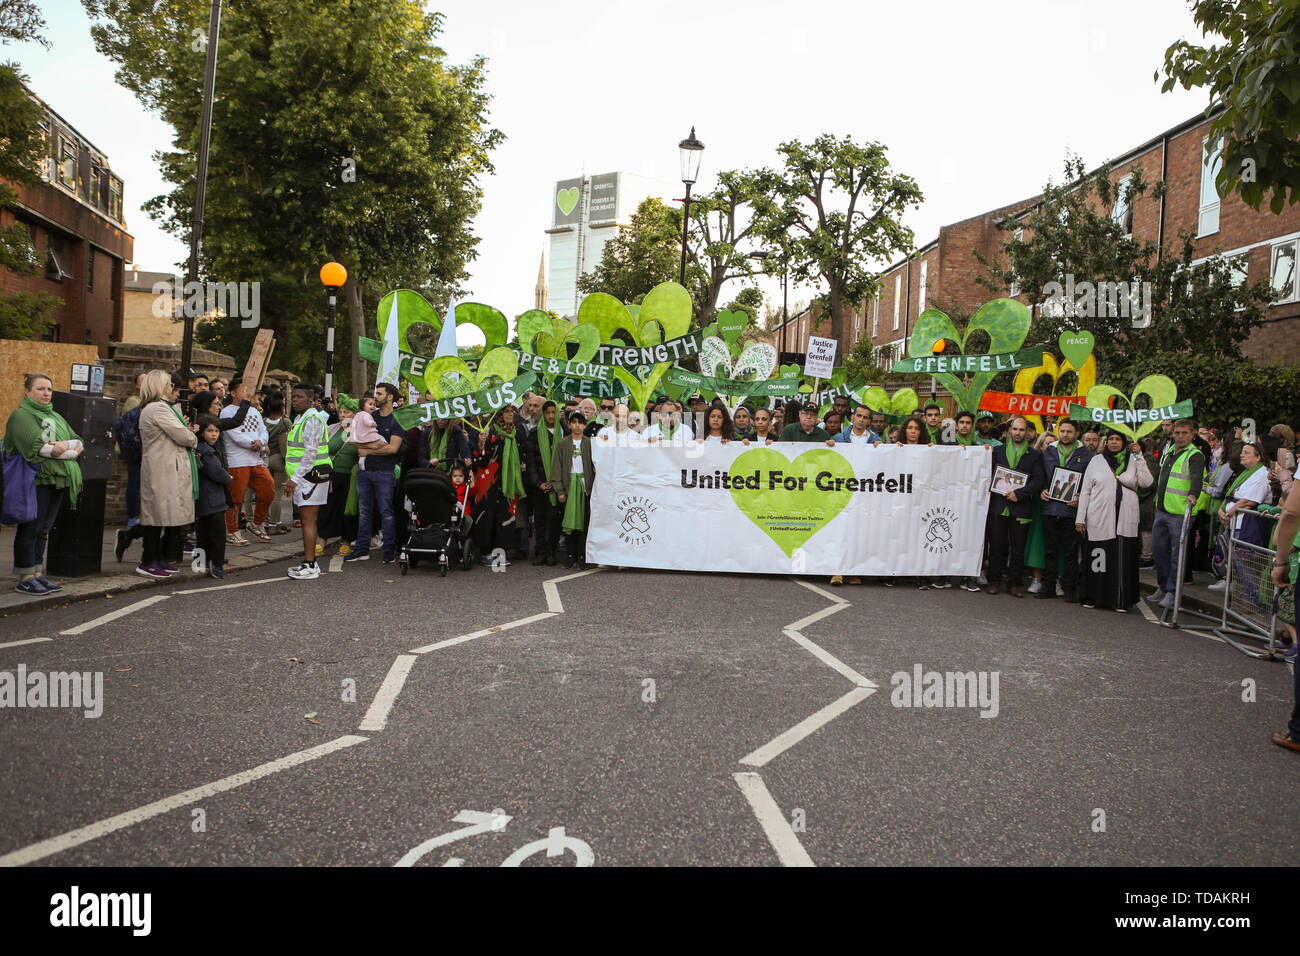 London, UK. 14th June, 2019. Members from the Grenfell community, with local fire fighters, take part in the Grenfell Silent Walk to mark the 2nd anniversary of the tower block fire in 2017 when 72 people lost their lives. Penelope Barritt/Alamy Live News - Stock Image